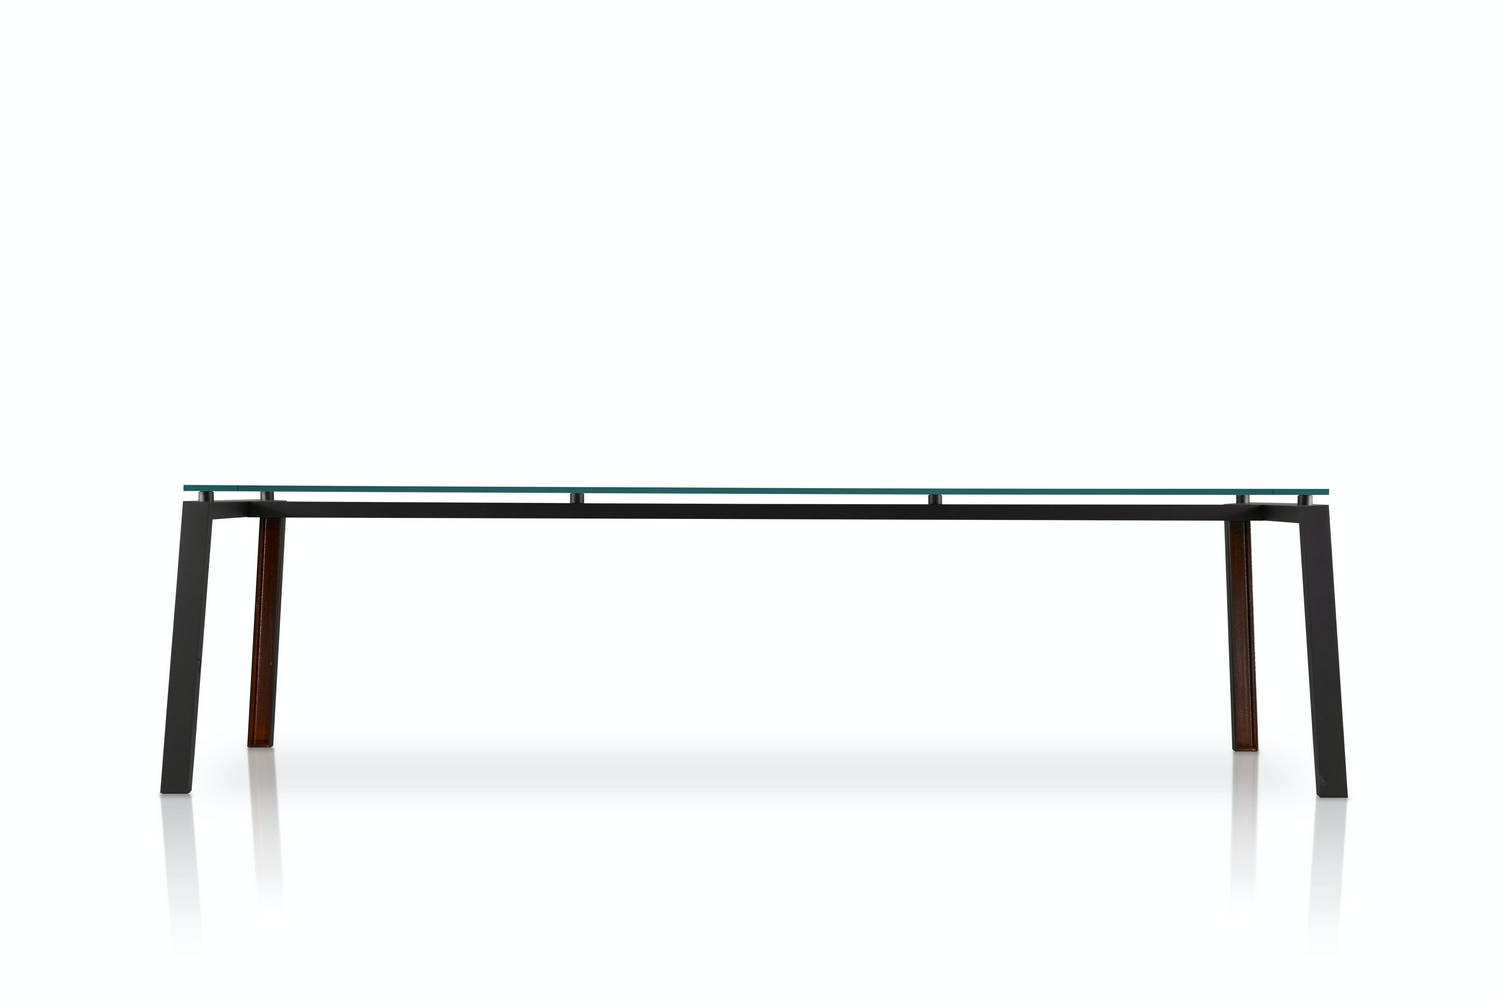 Ipe Table by Piero Lissoni for Porro